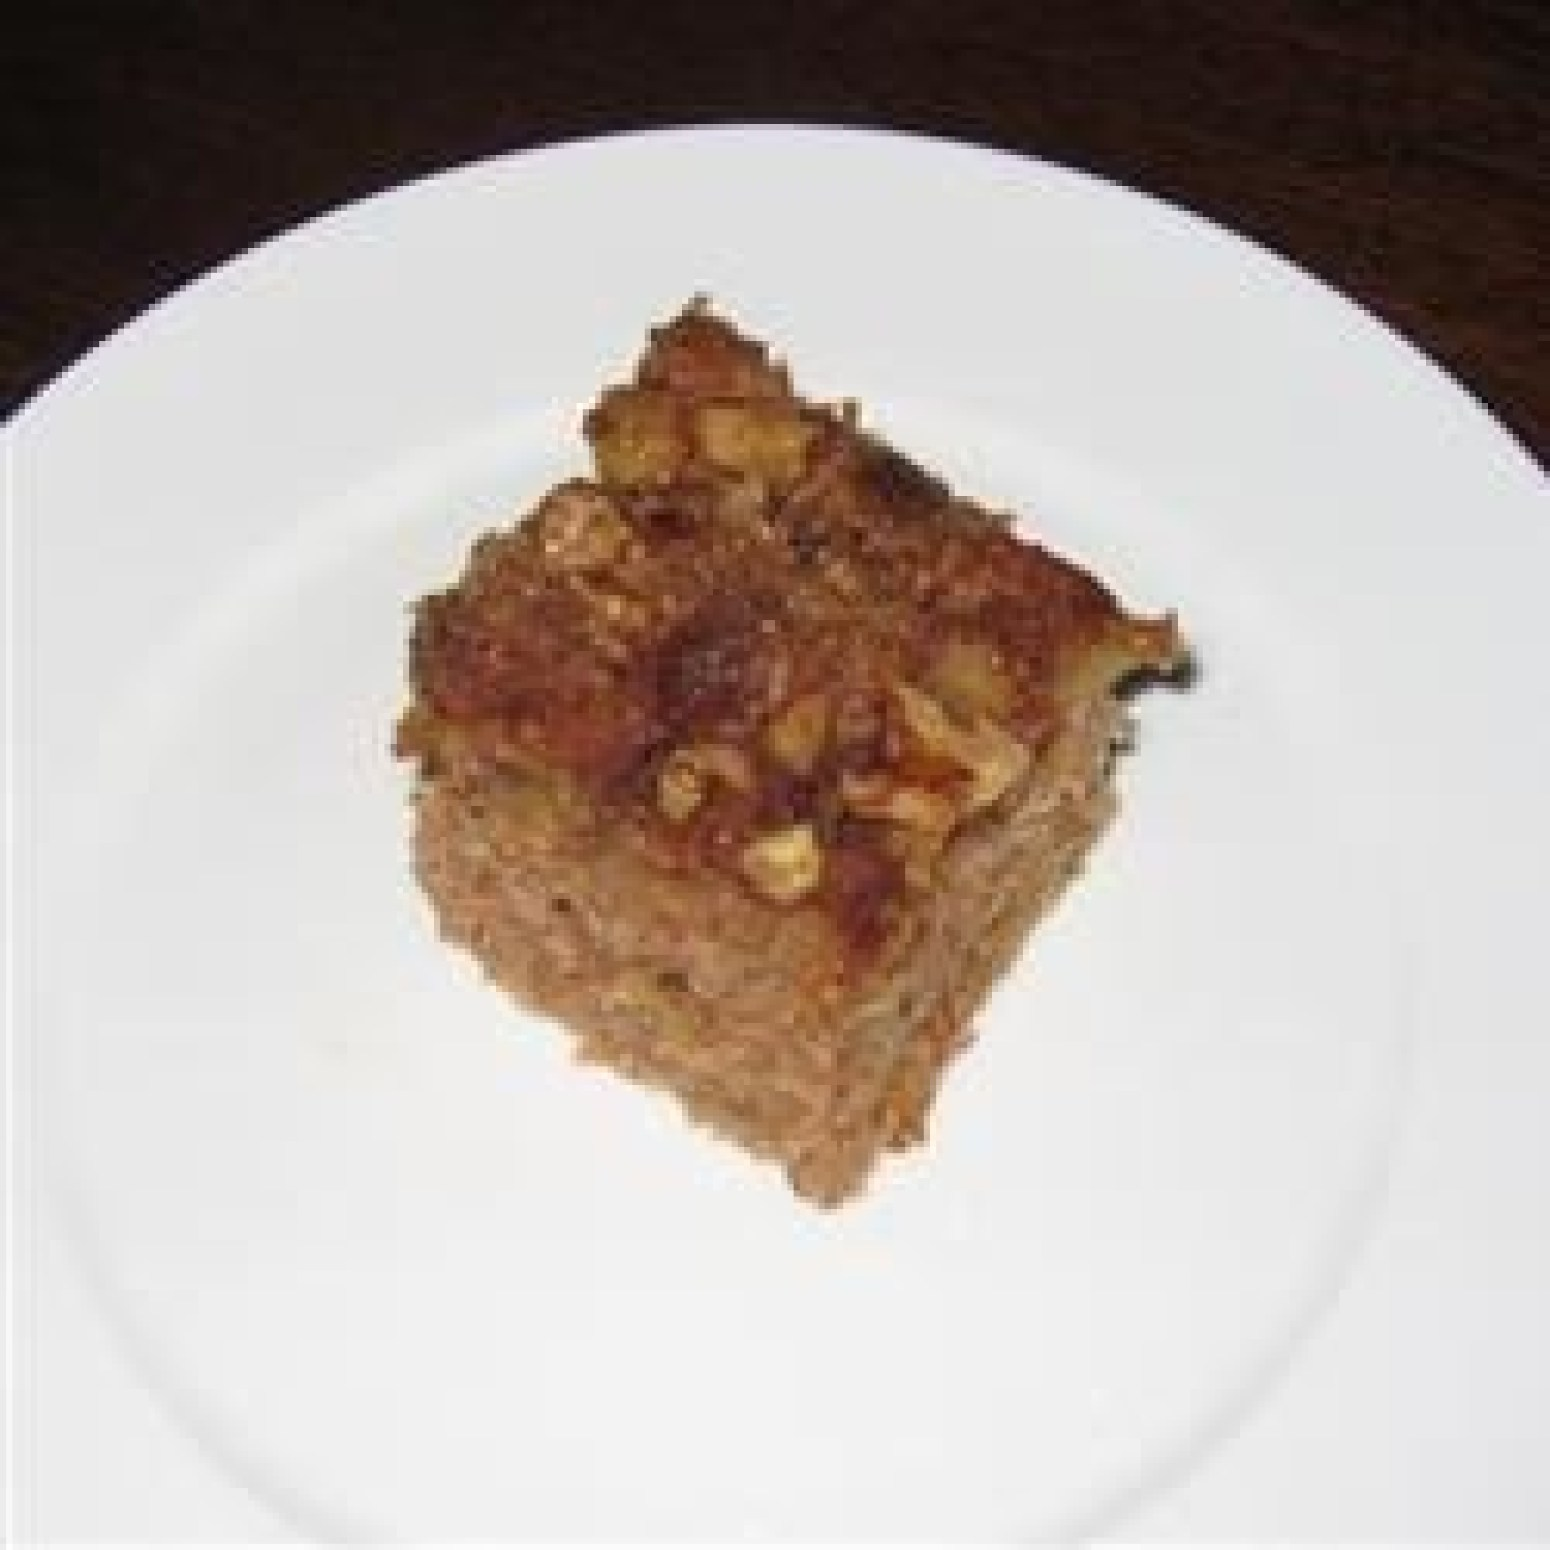 apple cake easy apple cake apple spice cake mom s apple cake recipe ...